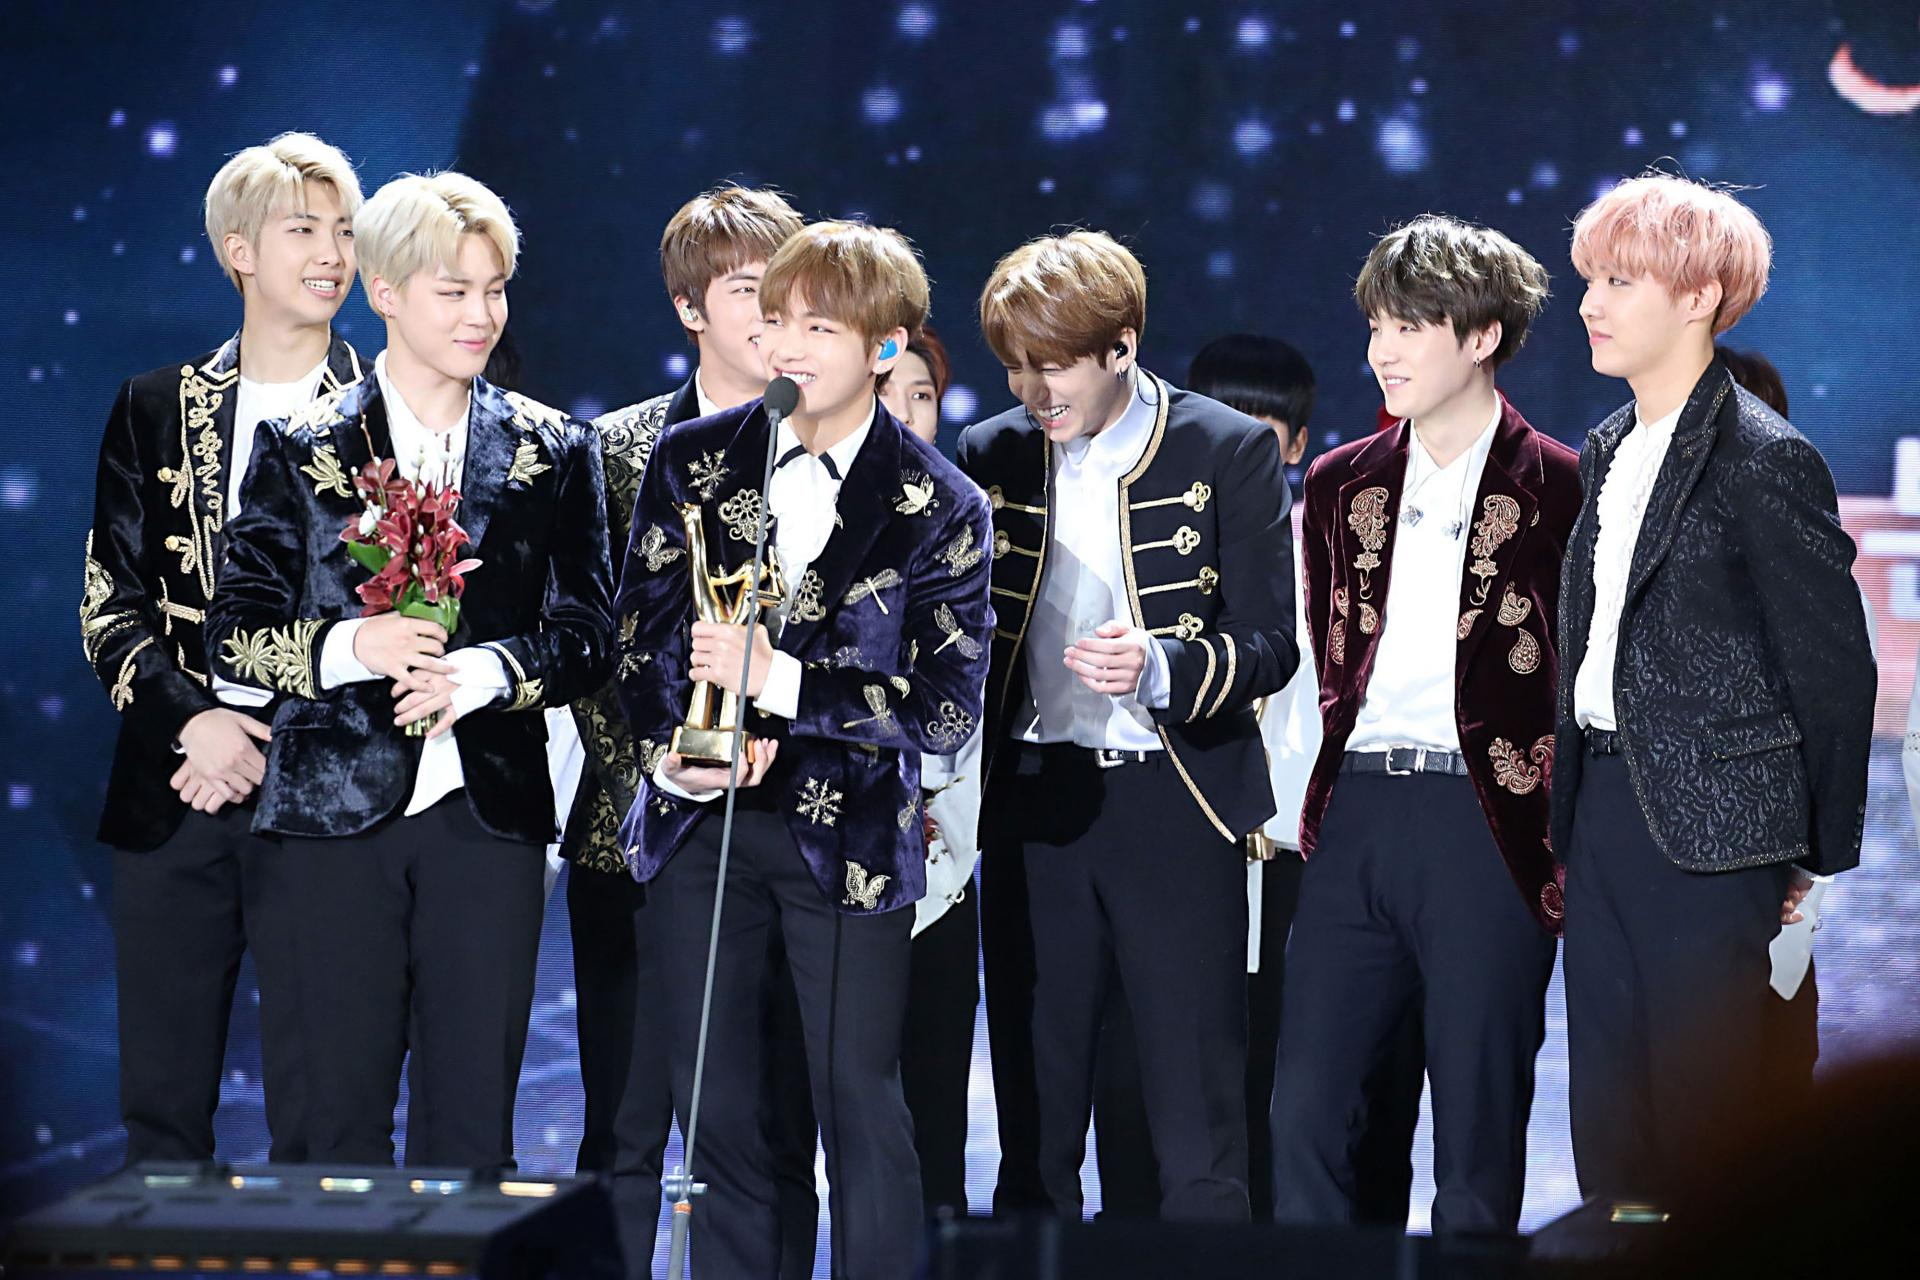 5 Of The Best BTS Songs